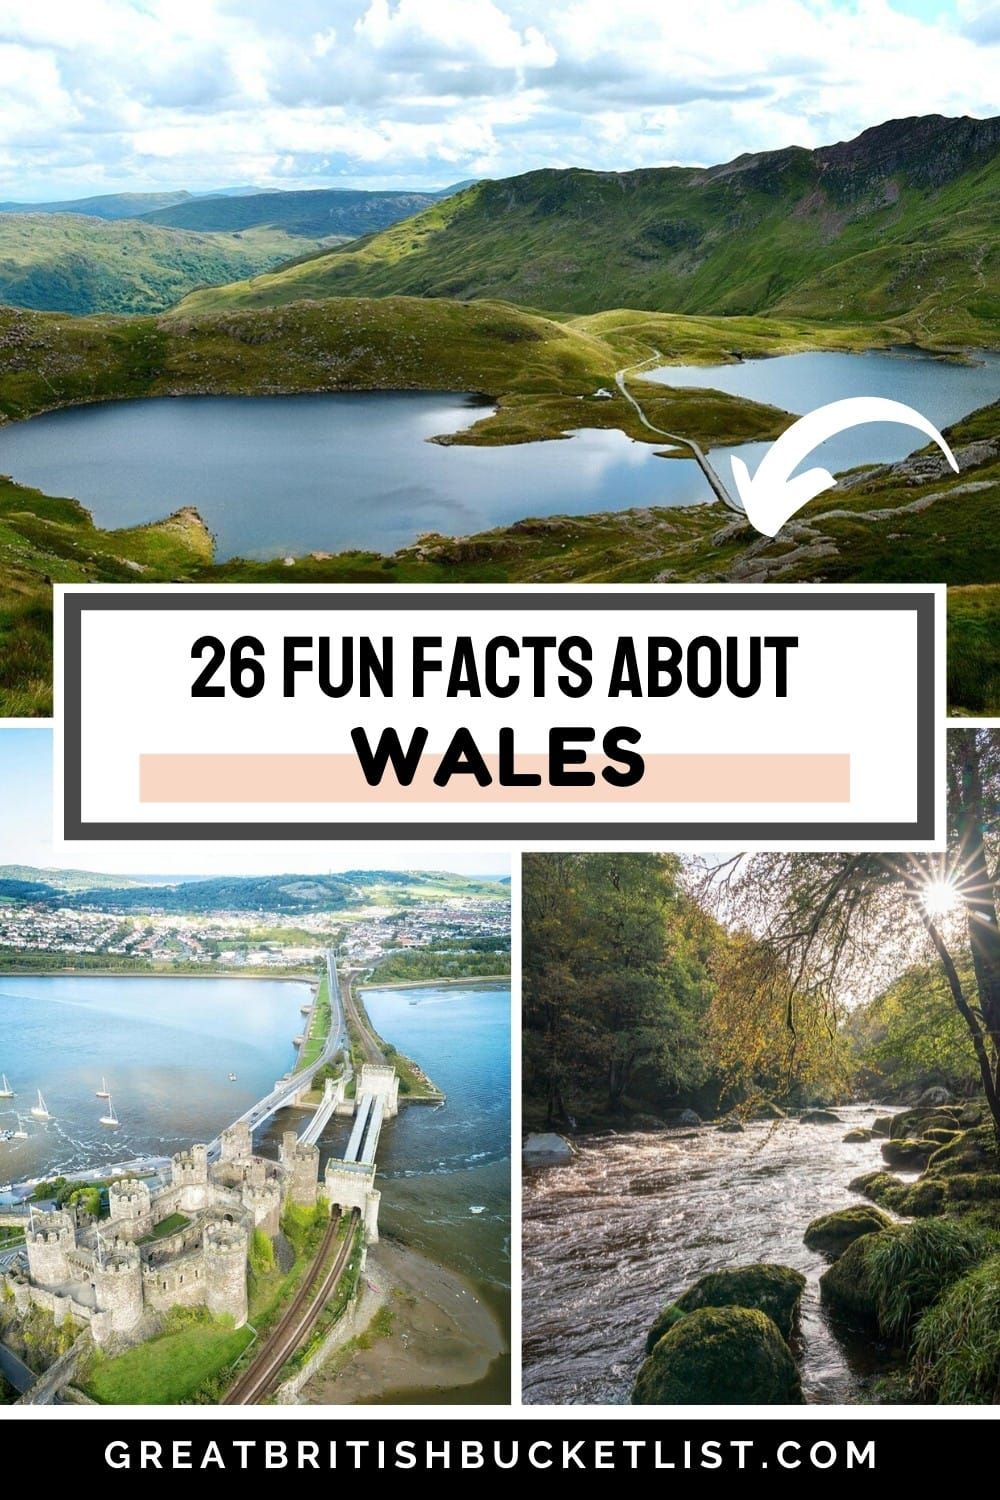 26 Fun Facts About Wales That Will Really Surprise You!